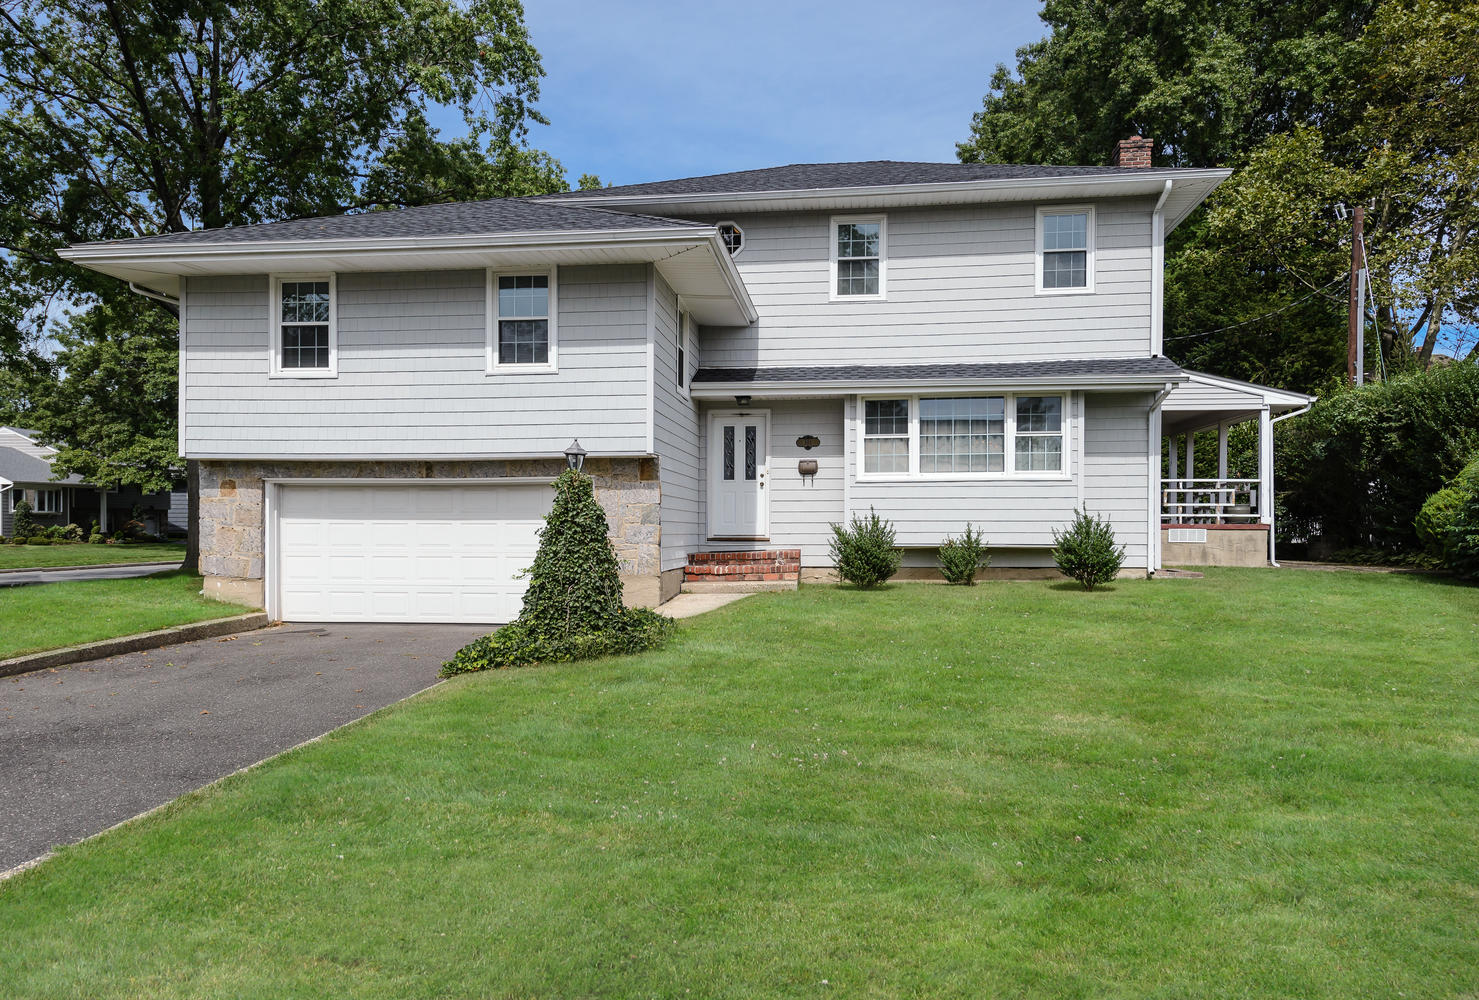 Single Family Home for Sale at Split 101 Mulberry Ave Garden City, New York, 11530 United States